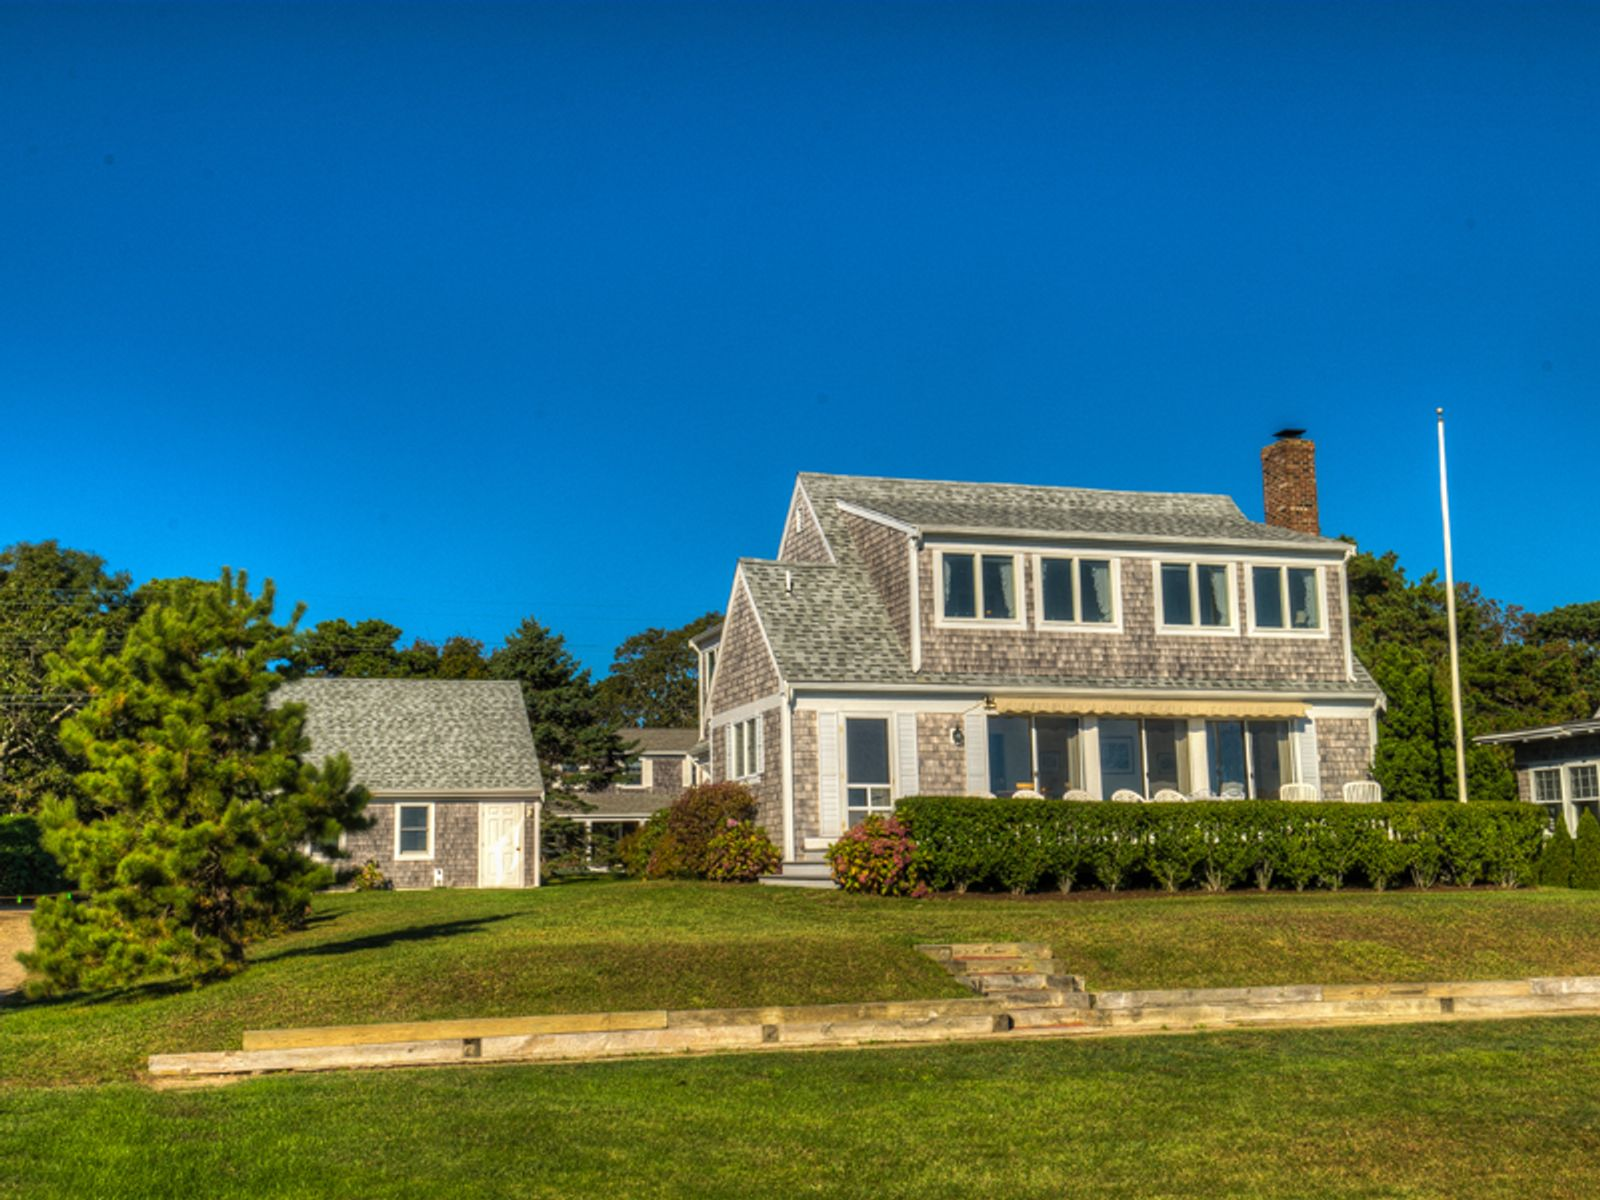 Magical Menauhant, East Falmouth MA Single Family Home - Cape Cod Real Estate